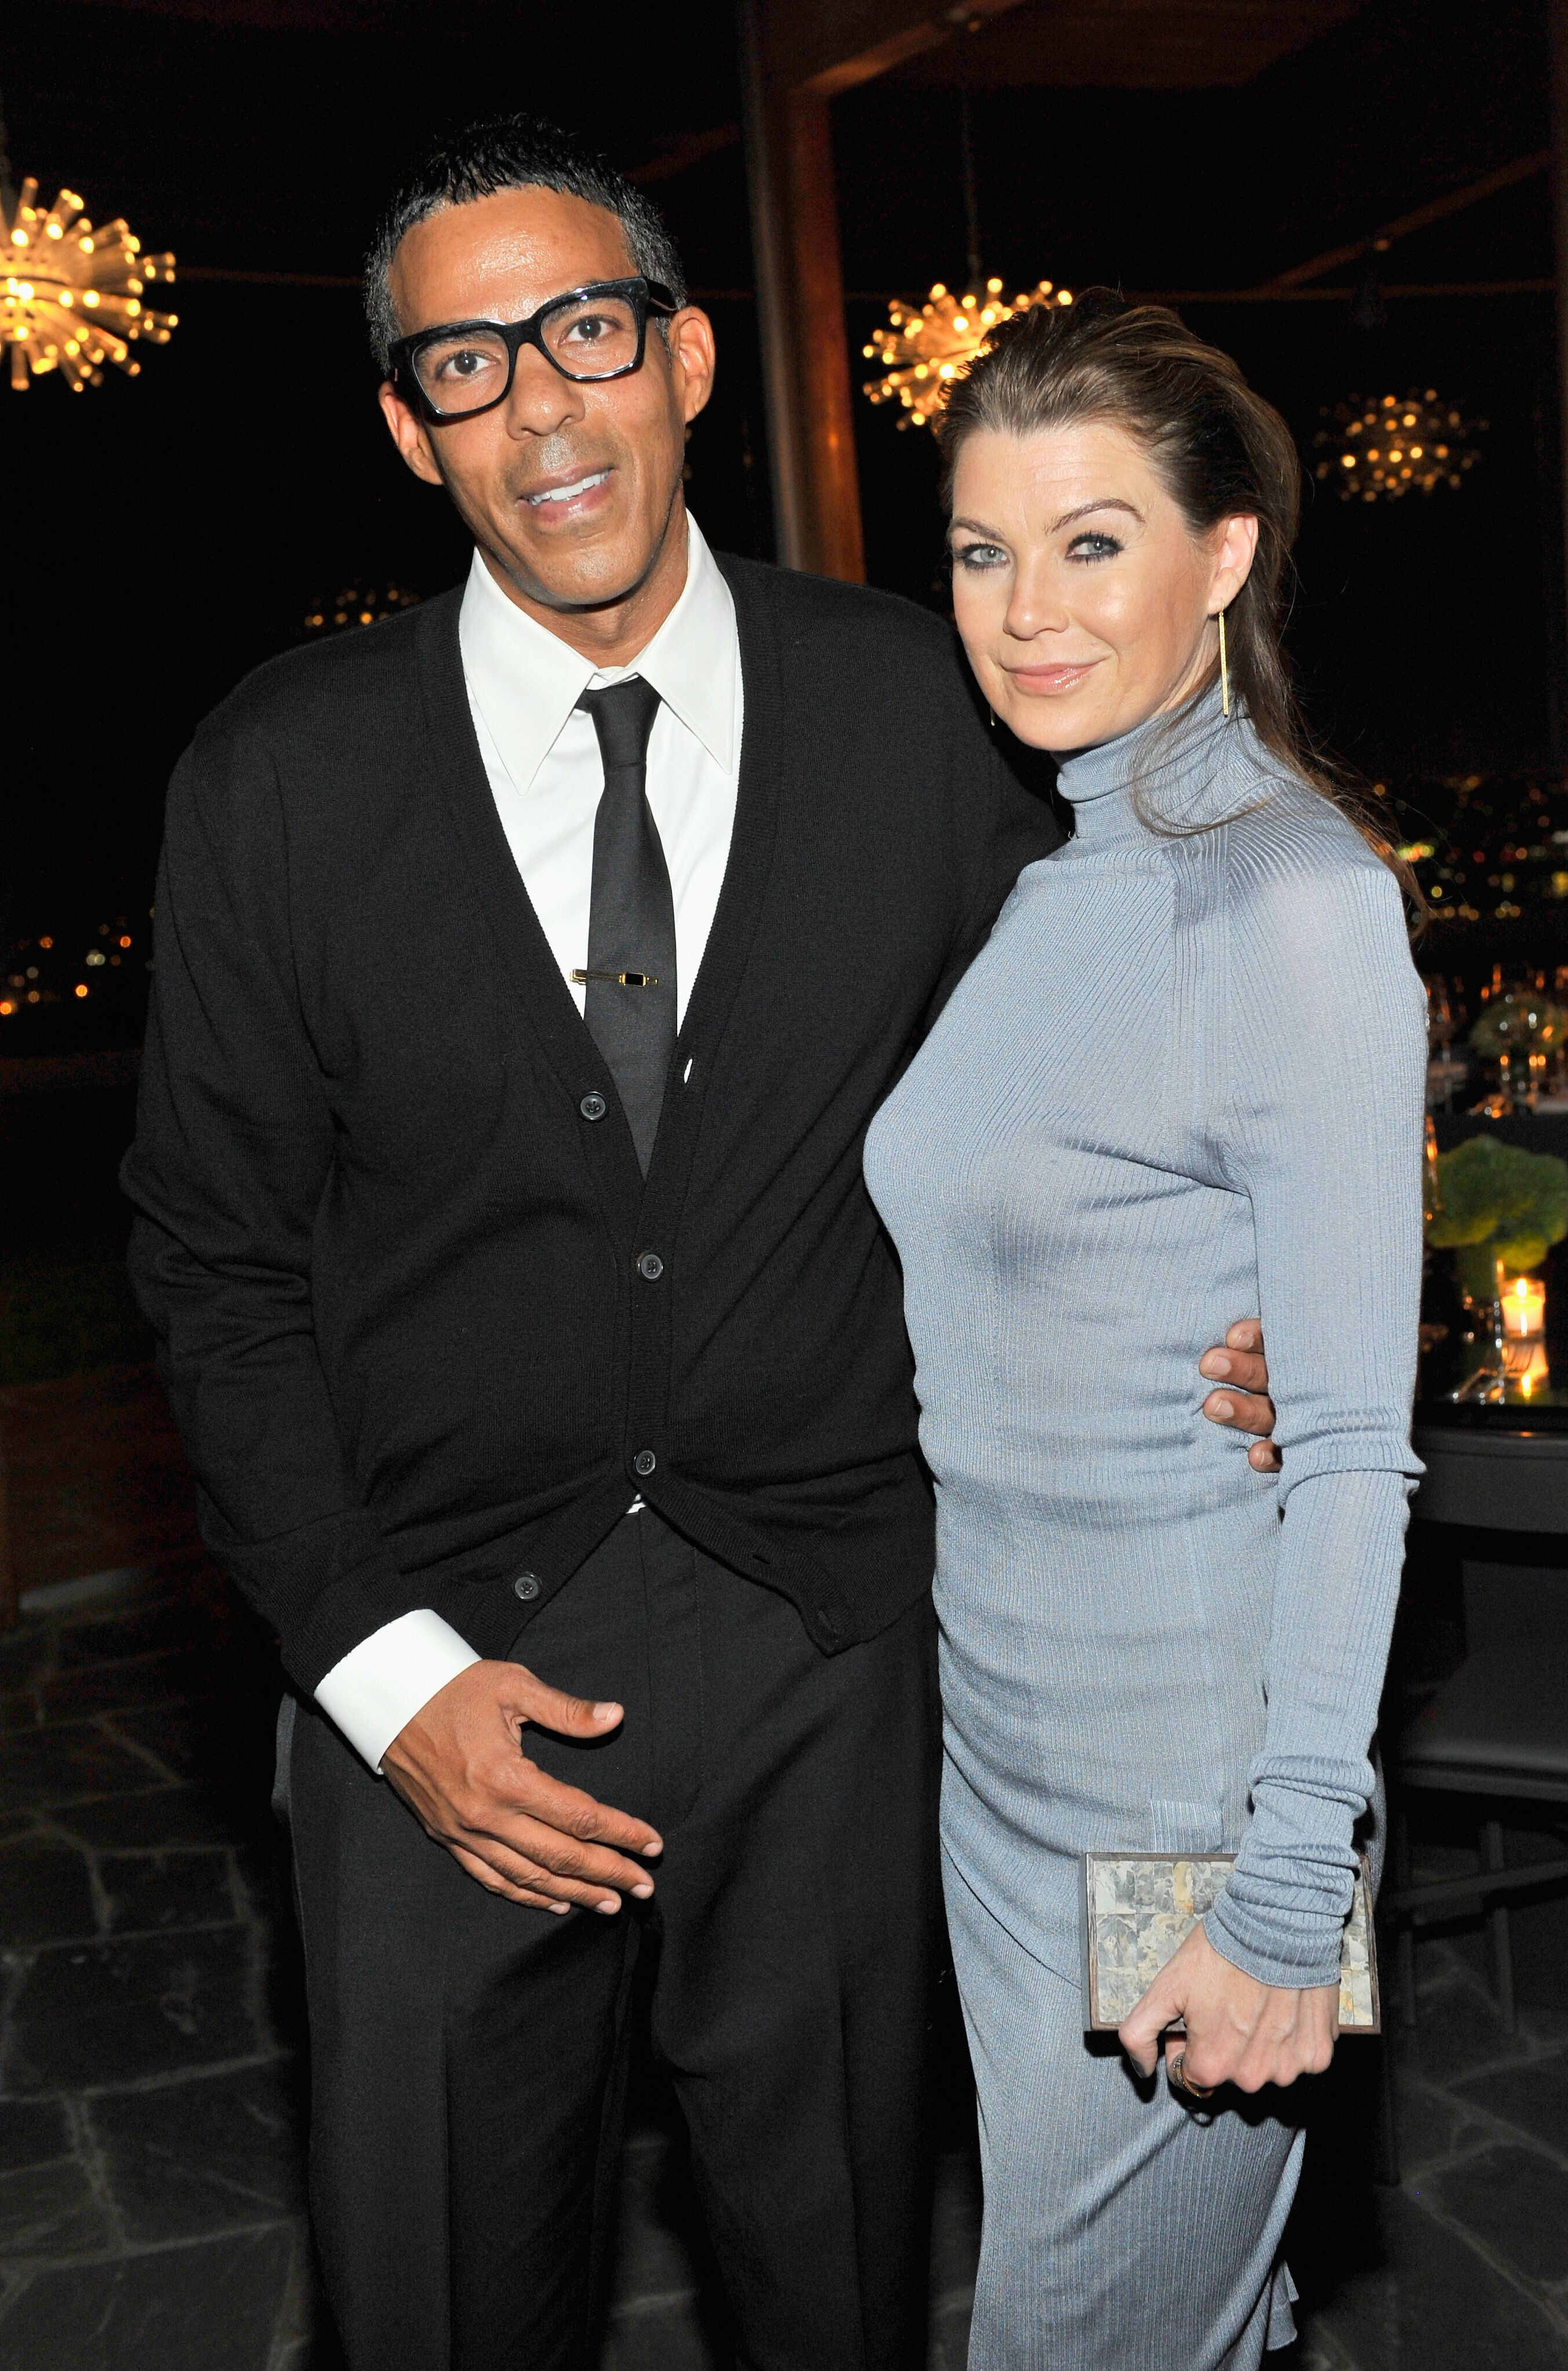 Chris Ivery and Ellen Pompeo attend a private dinner hosted by VOGUE to celebrate TOD'S Creative Director Alessandra Facchinetti on November 5, 2014 in Los Angeles, California. | Source: Getty Images